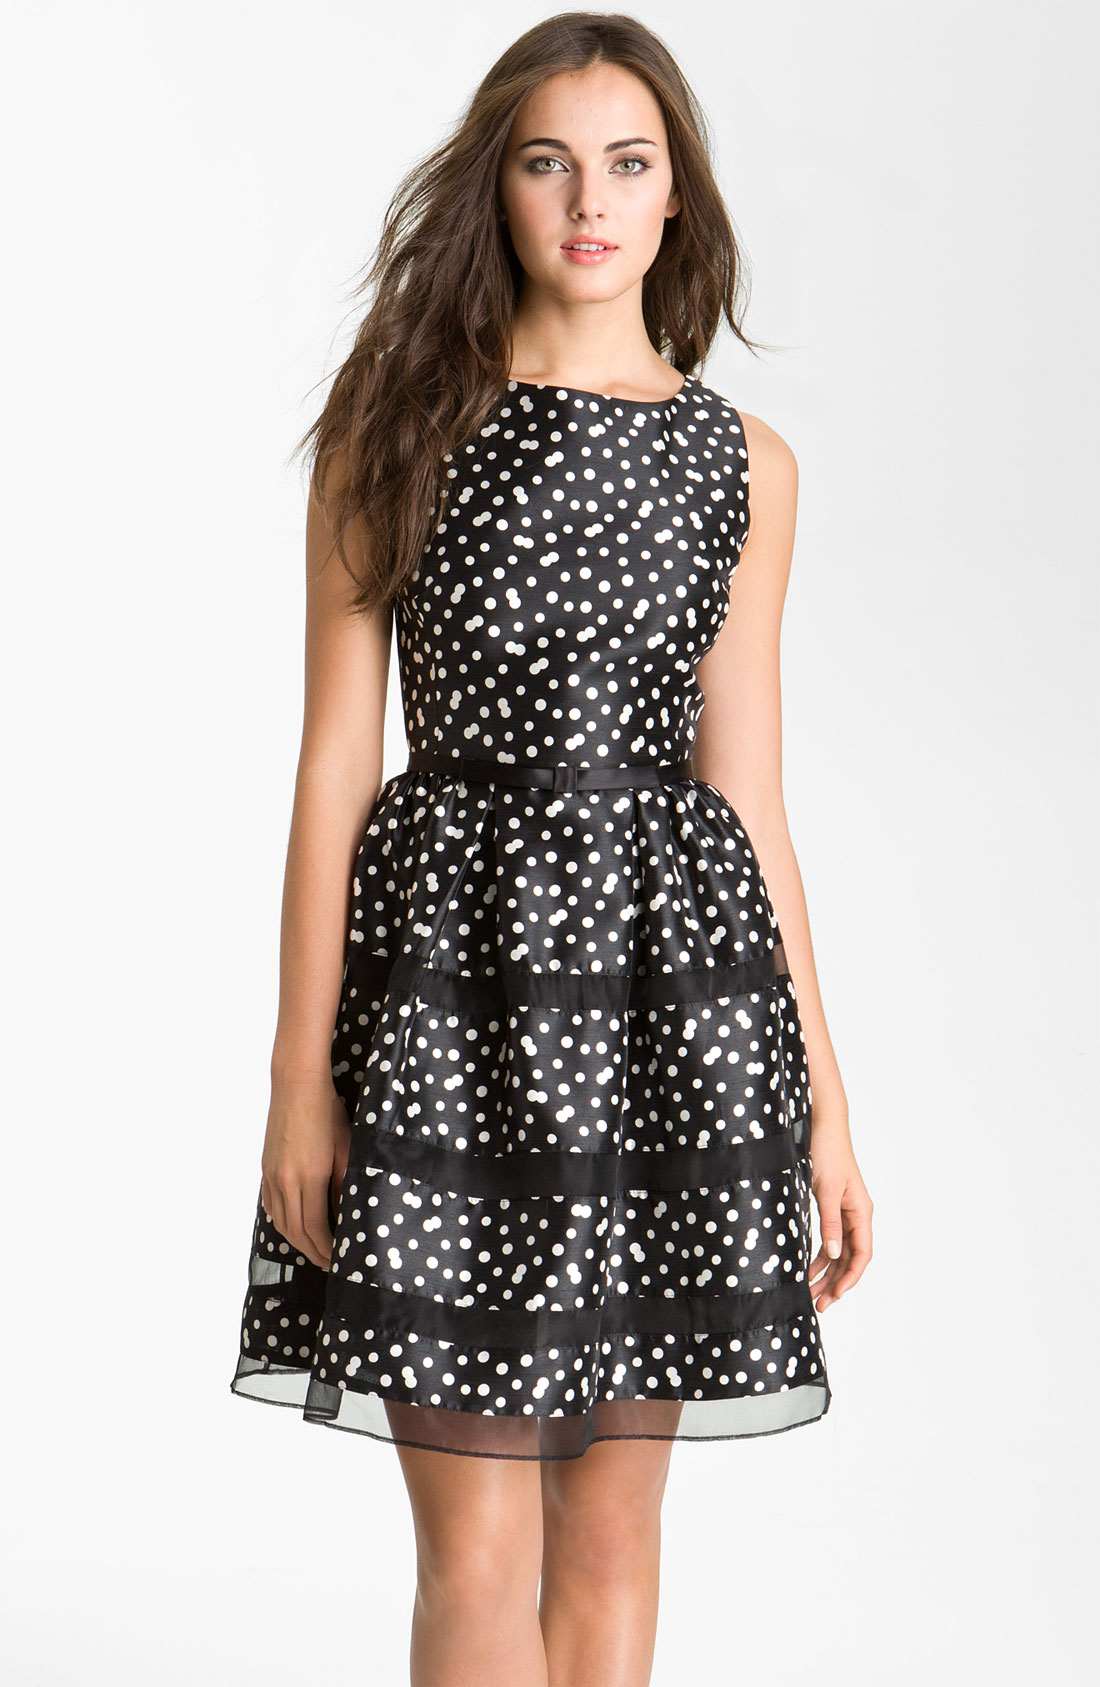 Taylor Dresses Belted Taffeta Fit And Flare Dress In Black